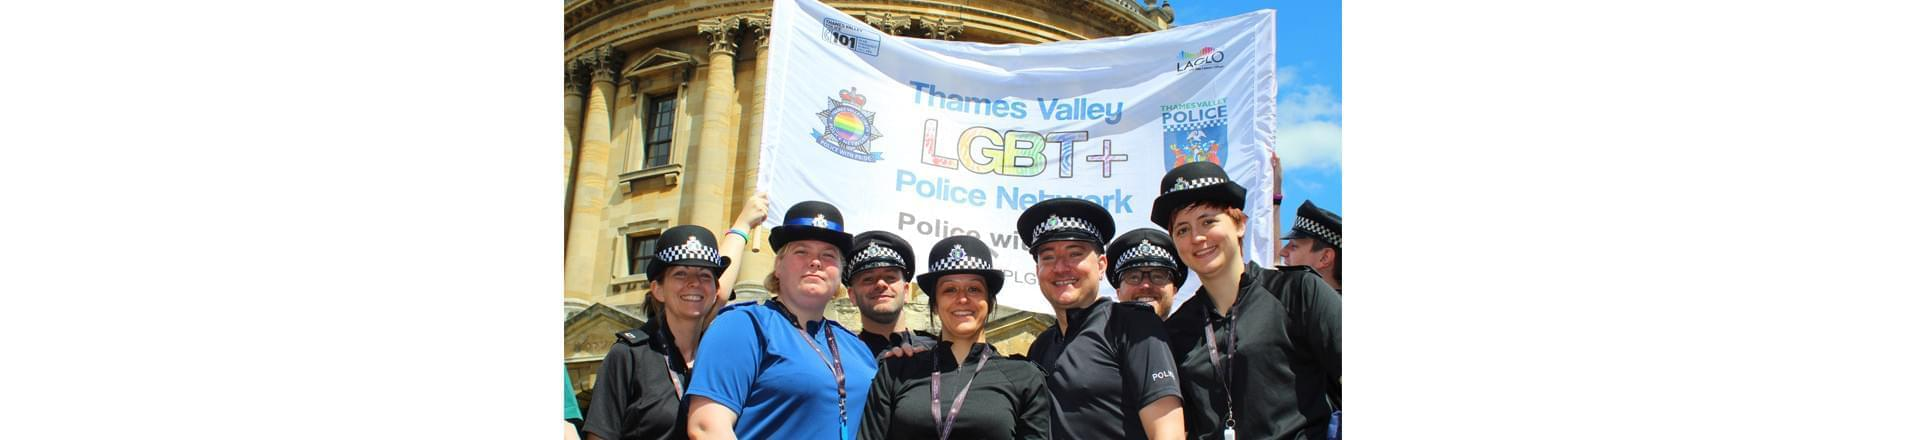 some Thames Valley Police employees at the 2017 Oxford Pride event with a banner promoting their LGBT+ Police Network